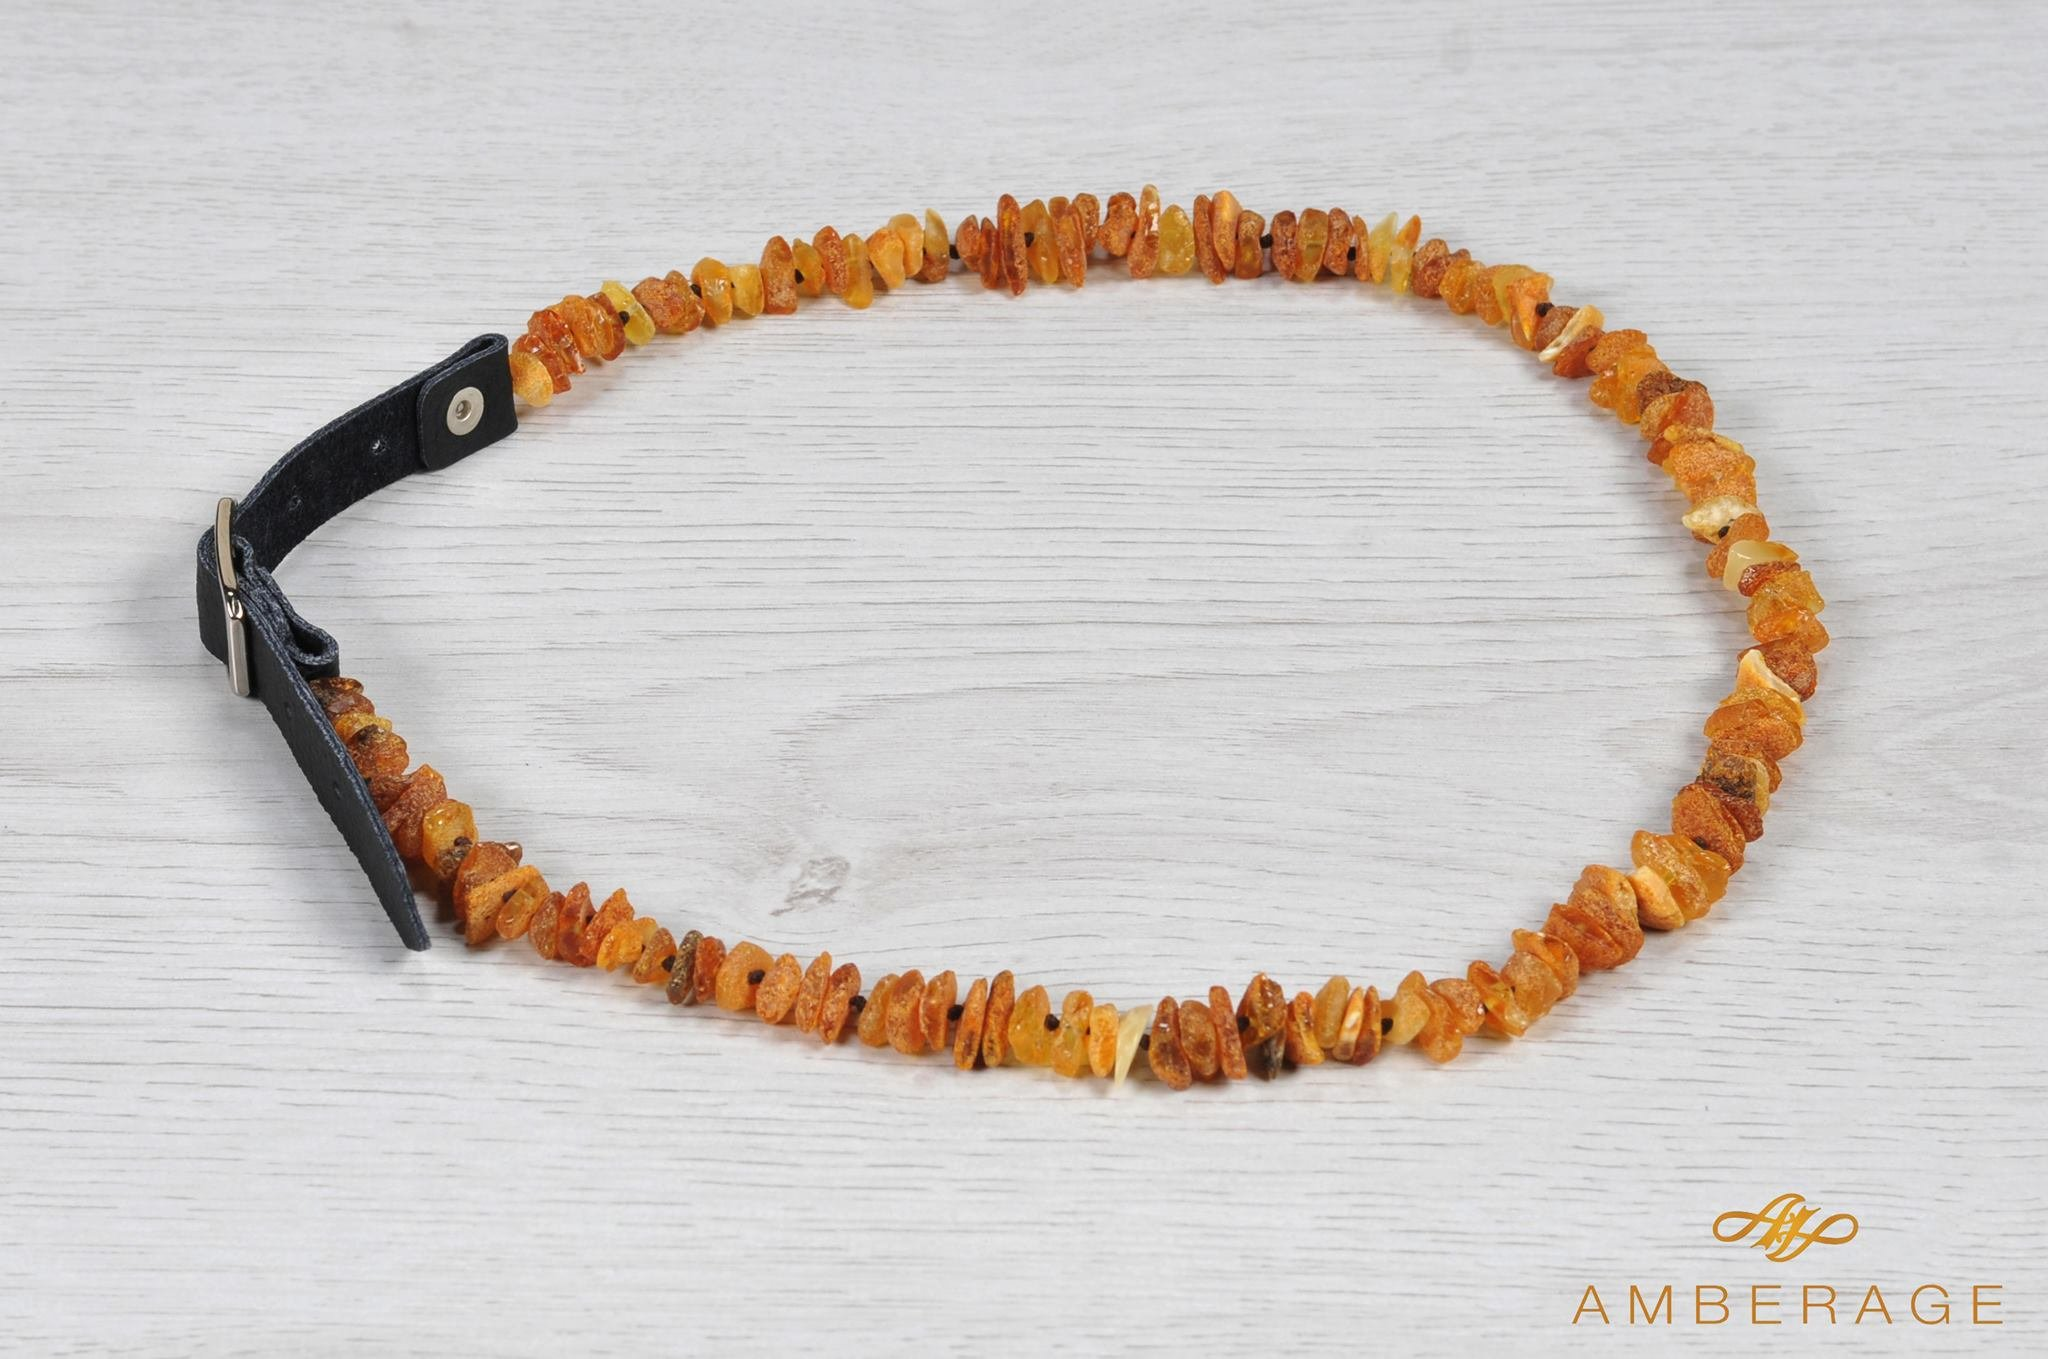 Amberage Natural Baltic Amber Necklaces - Jewelry for Dogs with Natural Leather Strap/Perfect Gift for Pet Lowers! Made by 6 sizes (L 44-52cm)